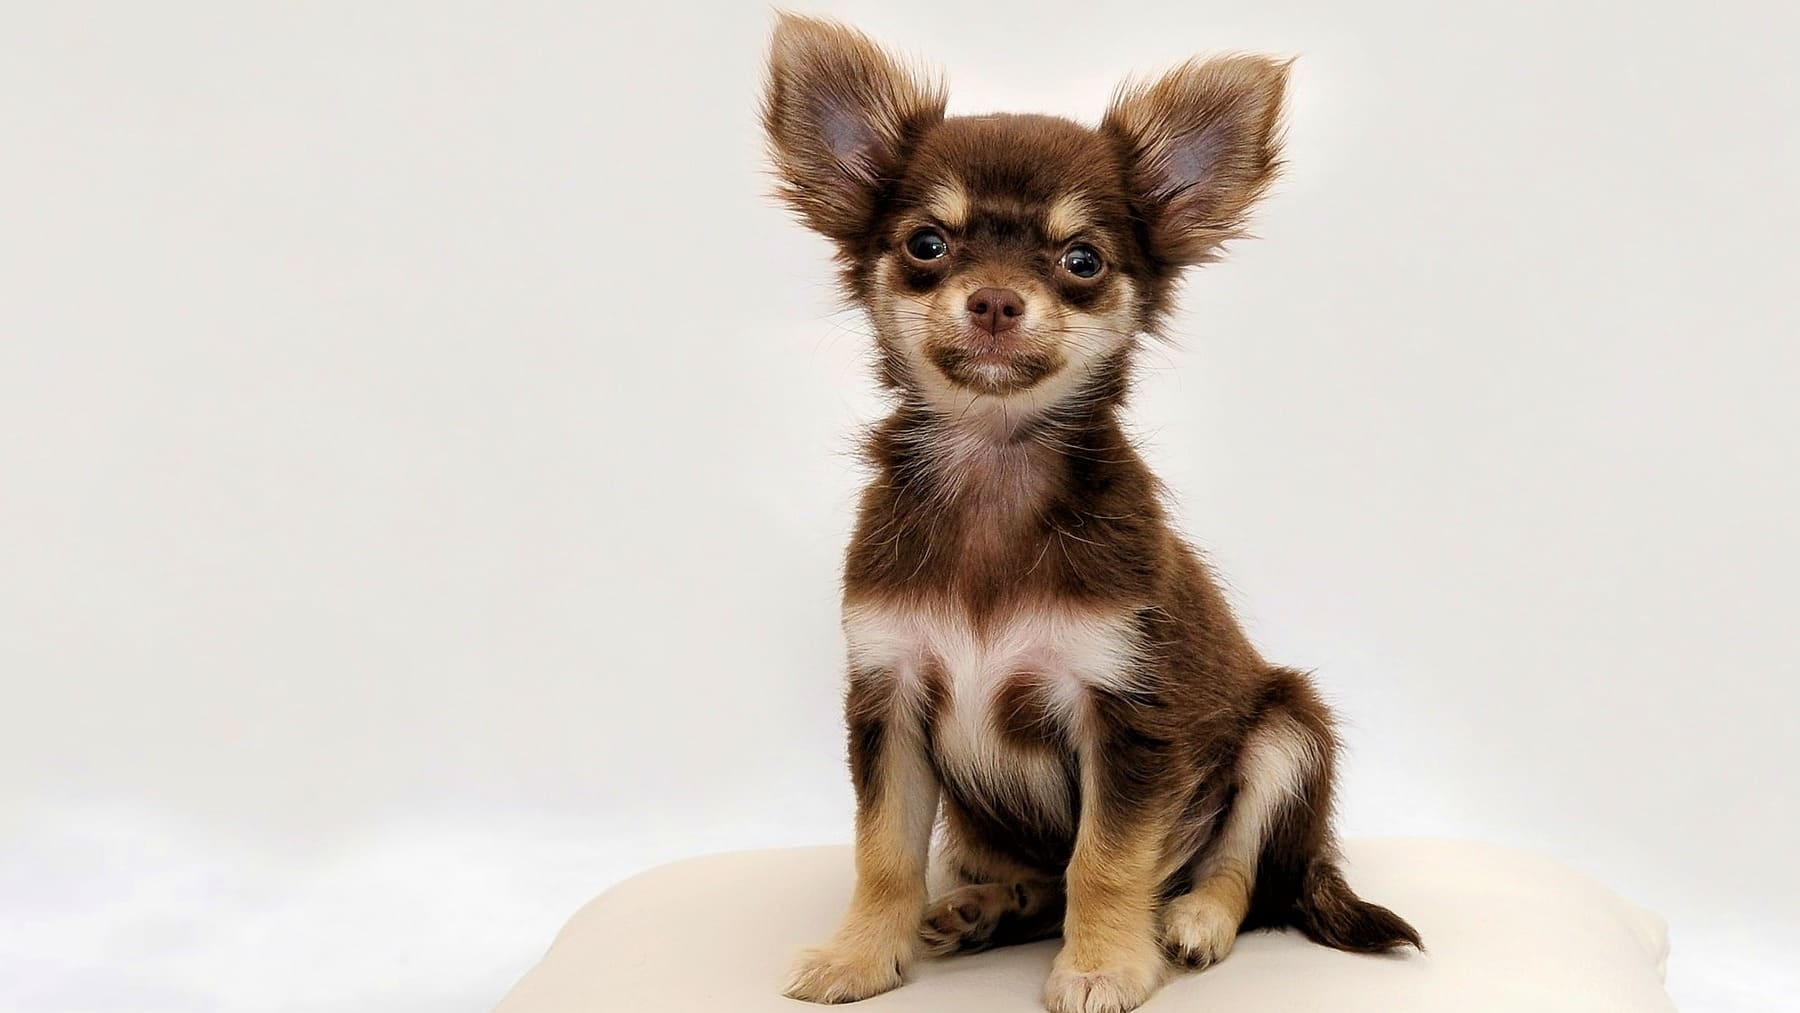 Pets: 3 small dog breeds that don't grow